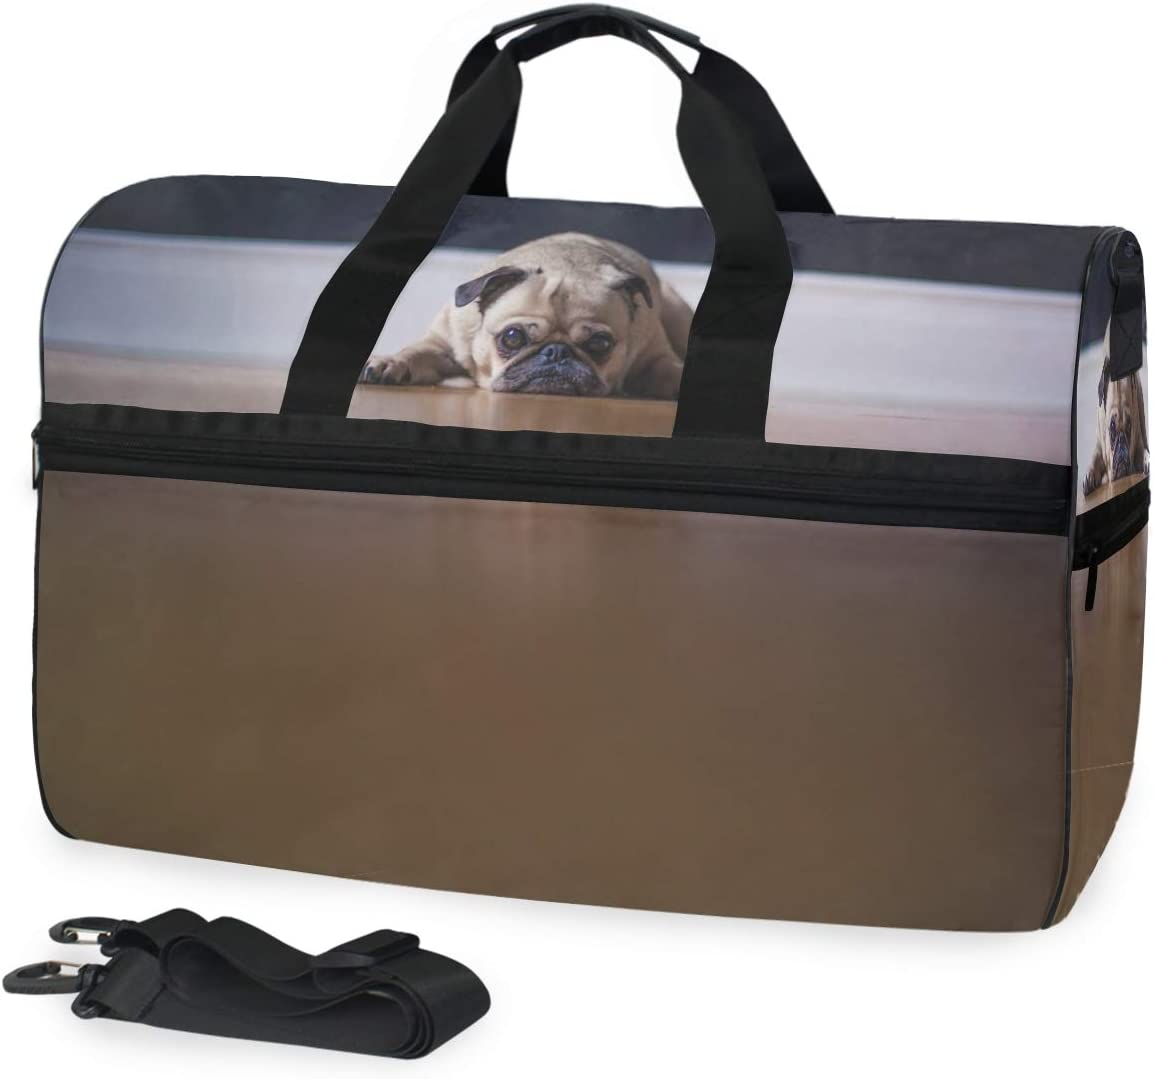 MUOOUM Pug Dog So Sad Large Duffle Bags Sports Gym Bag with Shoes Compartment for Men and Women